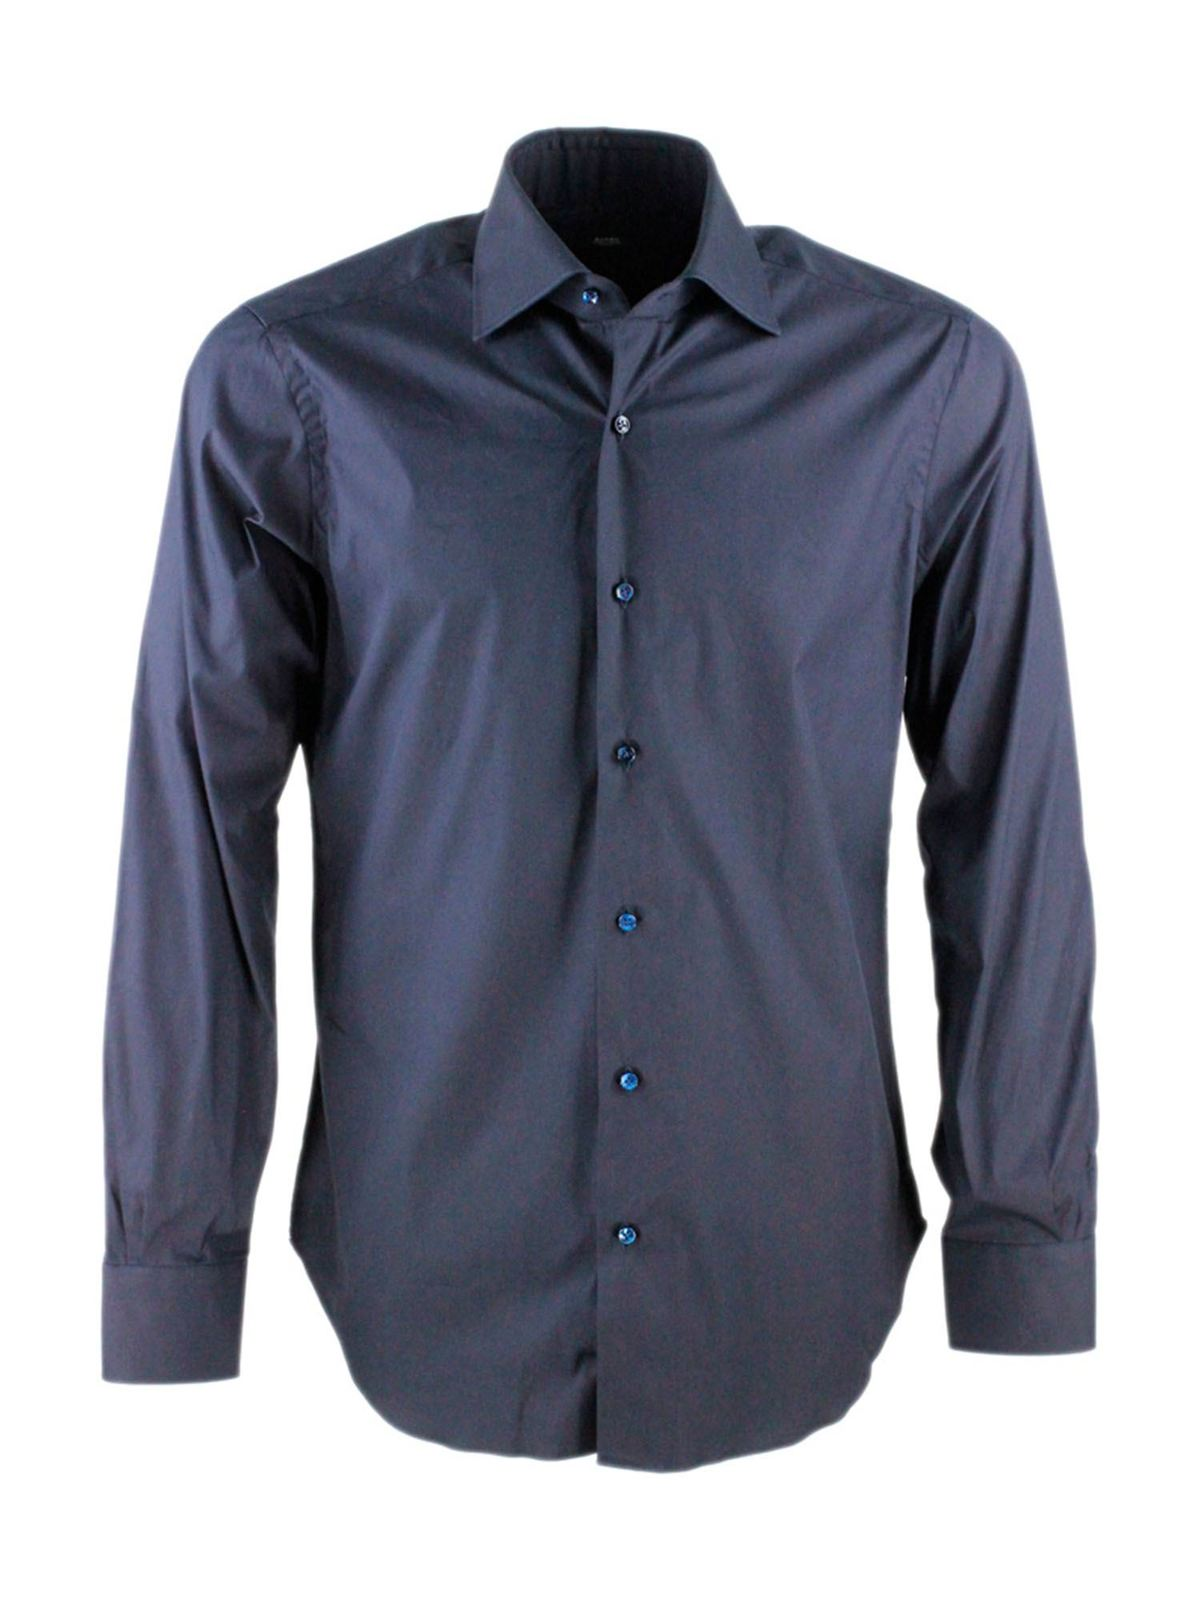 Barba Cottons TONE-ON-TONE BUTTON SHIRT IN BLUE